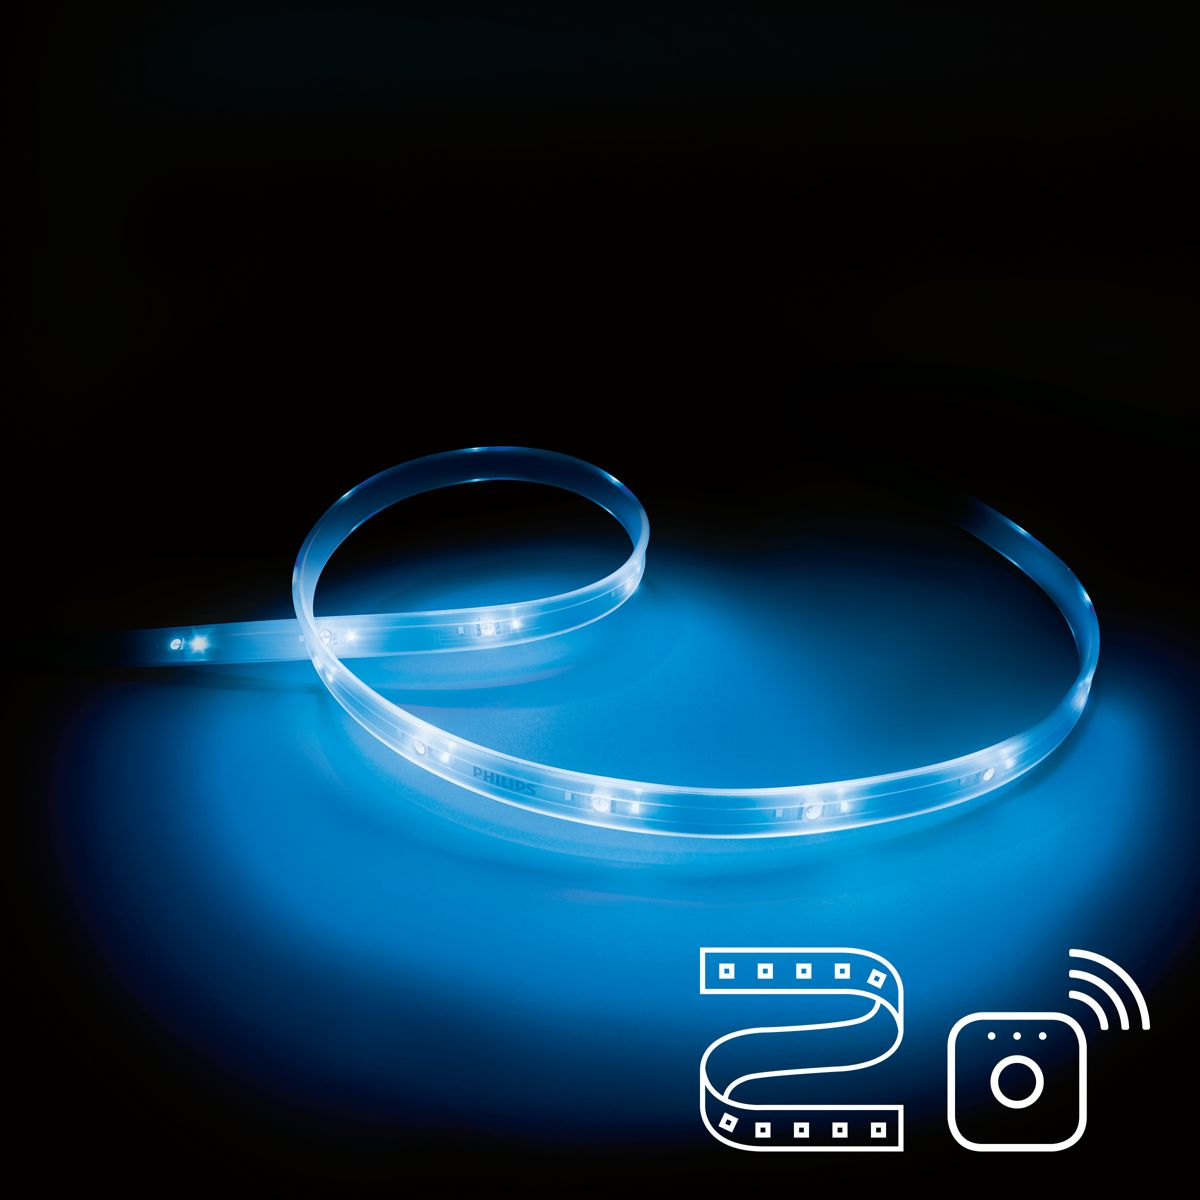 Kræver en Philips LightStrip Plus og en Philips Hue Bridge